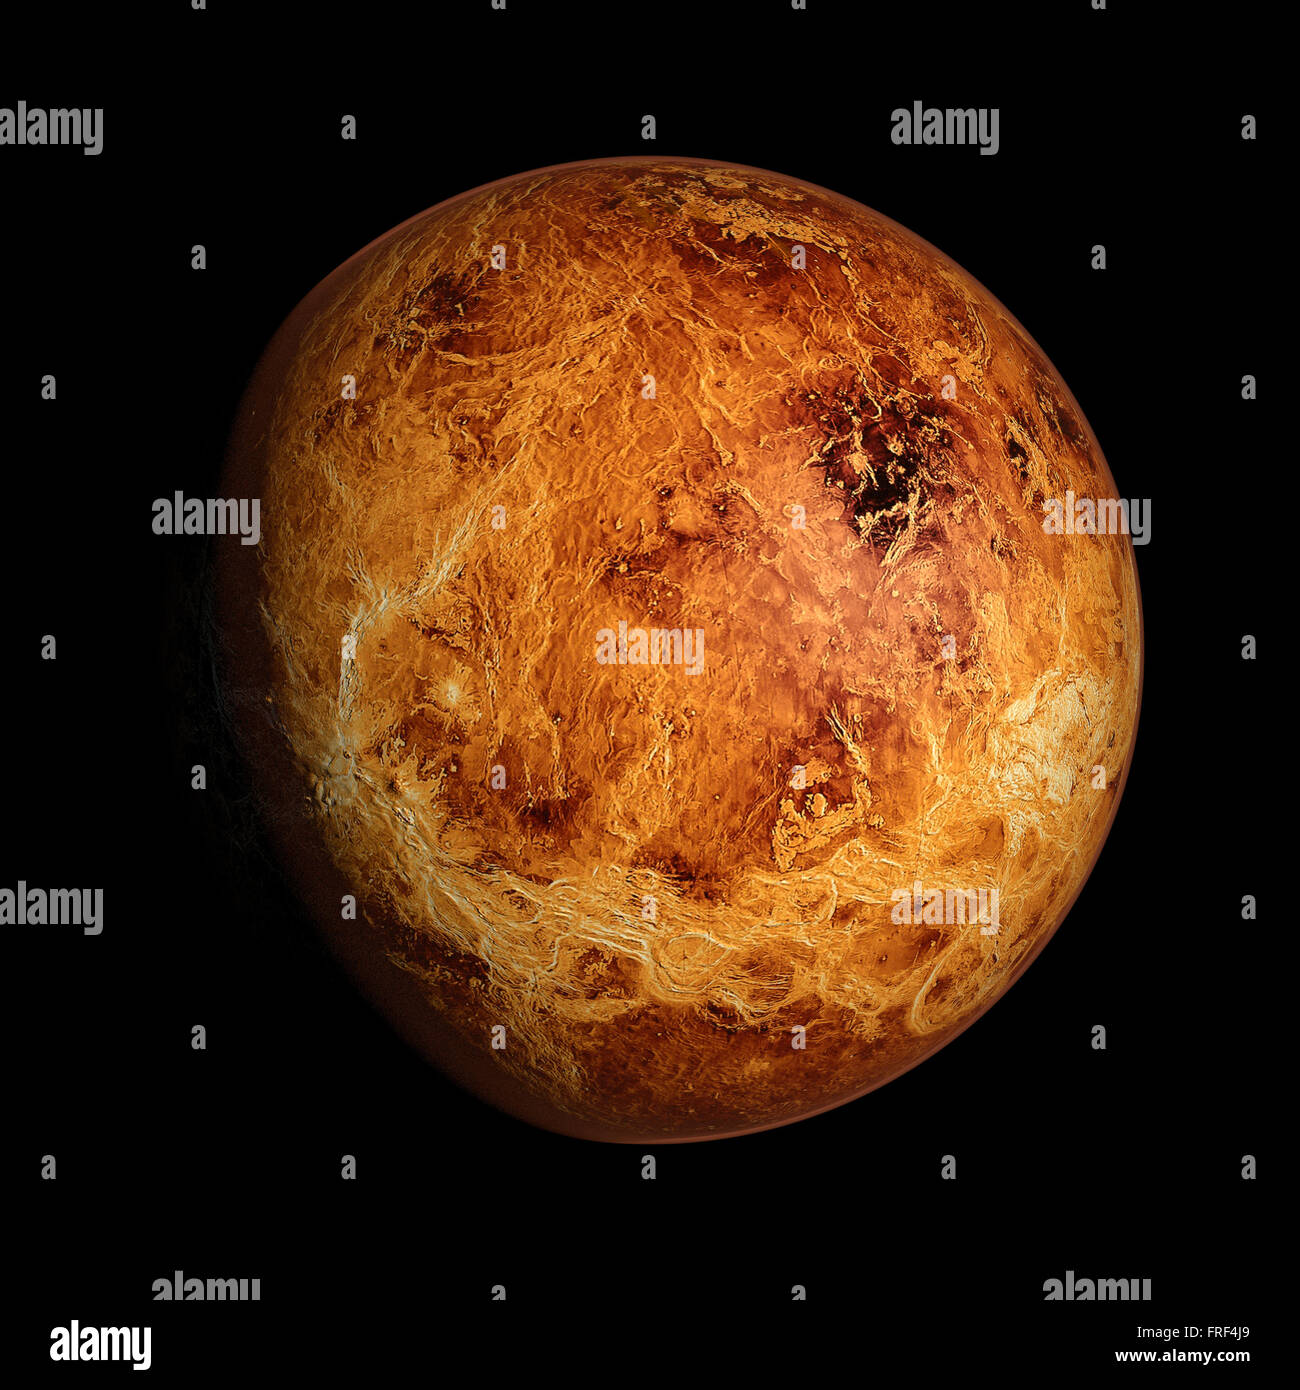 Venus Planet Solar System space isolated illustration - Stock Image